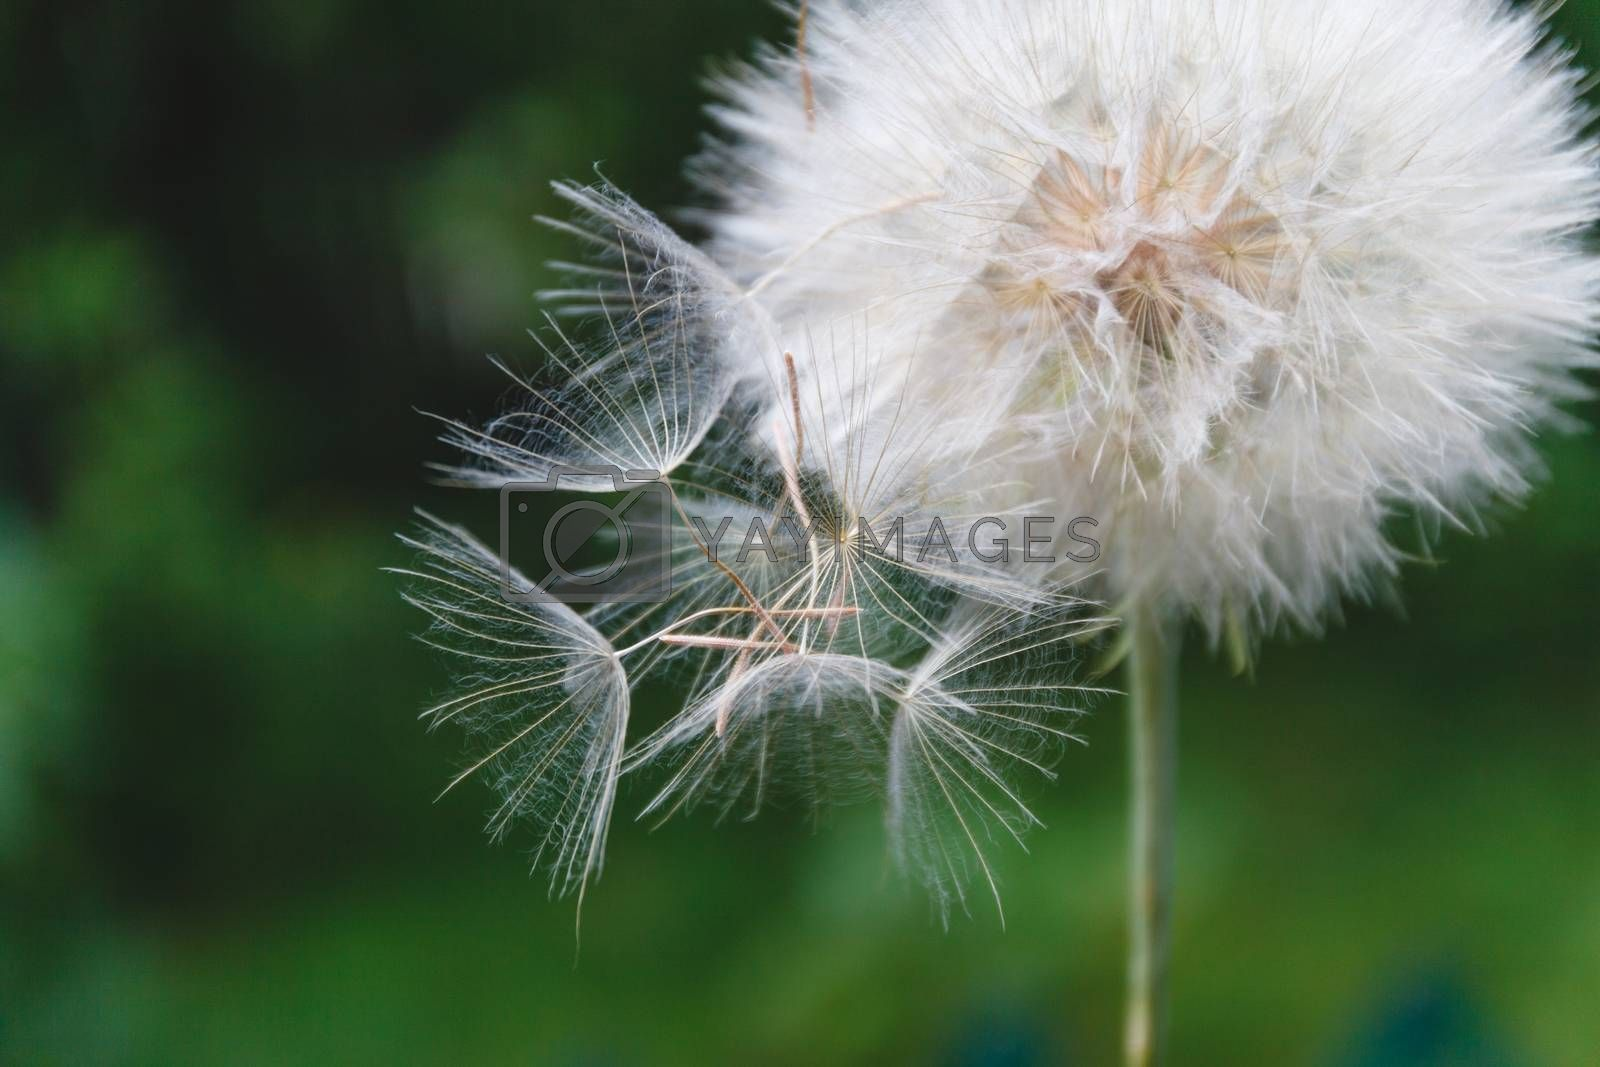 One White dandelion scatters, close-up on a dark background. Mac by Tanacha